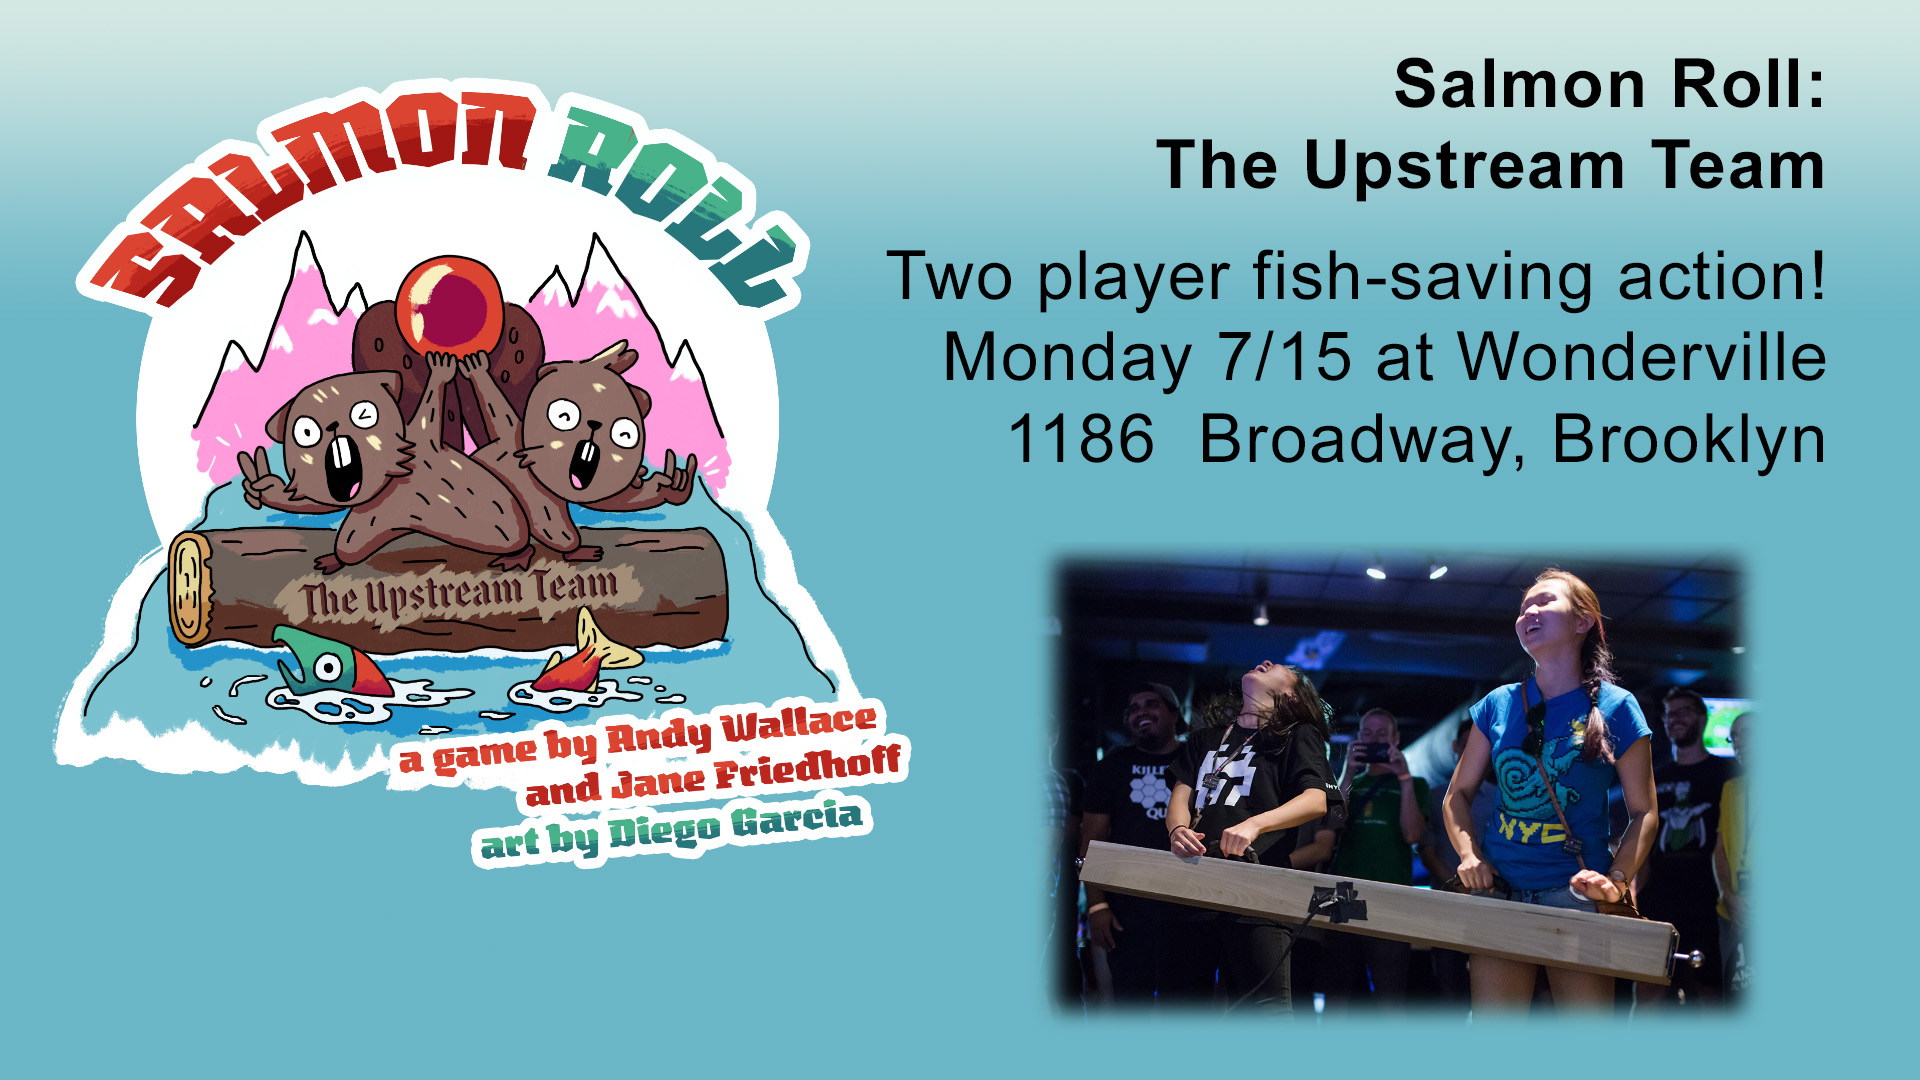 RSVP:  https://withfriends.co/Event/1977710/Game_Exhibition_Salmon_Roll